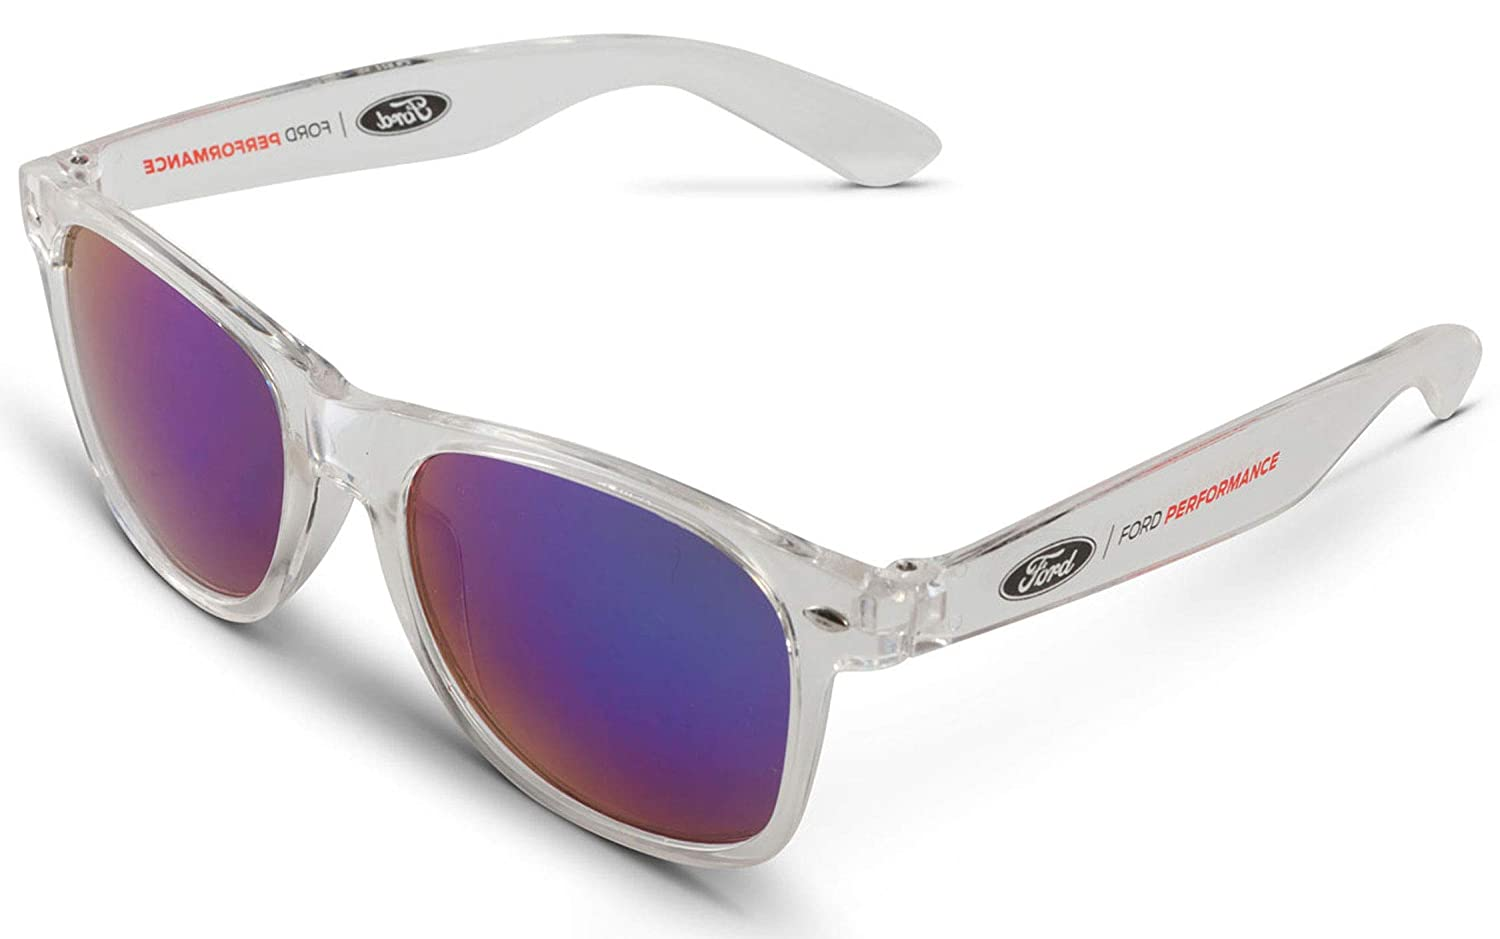 Gregs Automotive Ford Performance Mirrored Sunglasses Bundle with Driving Style Decal